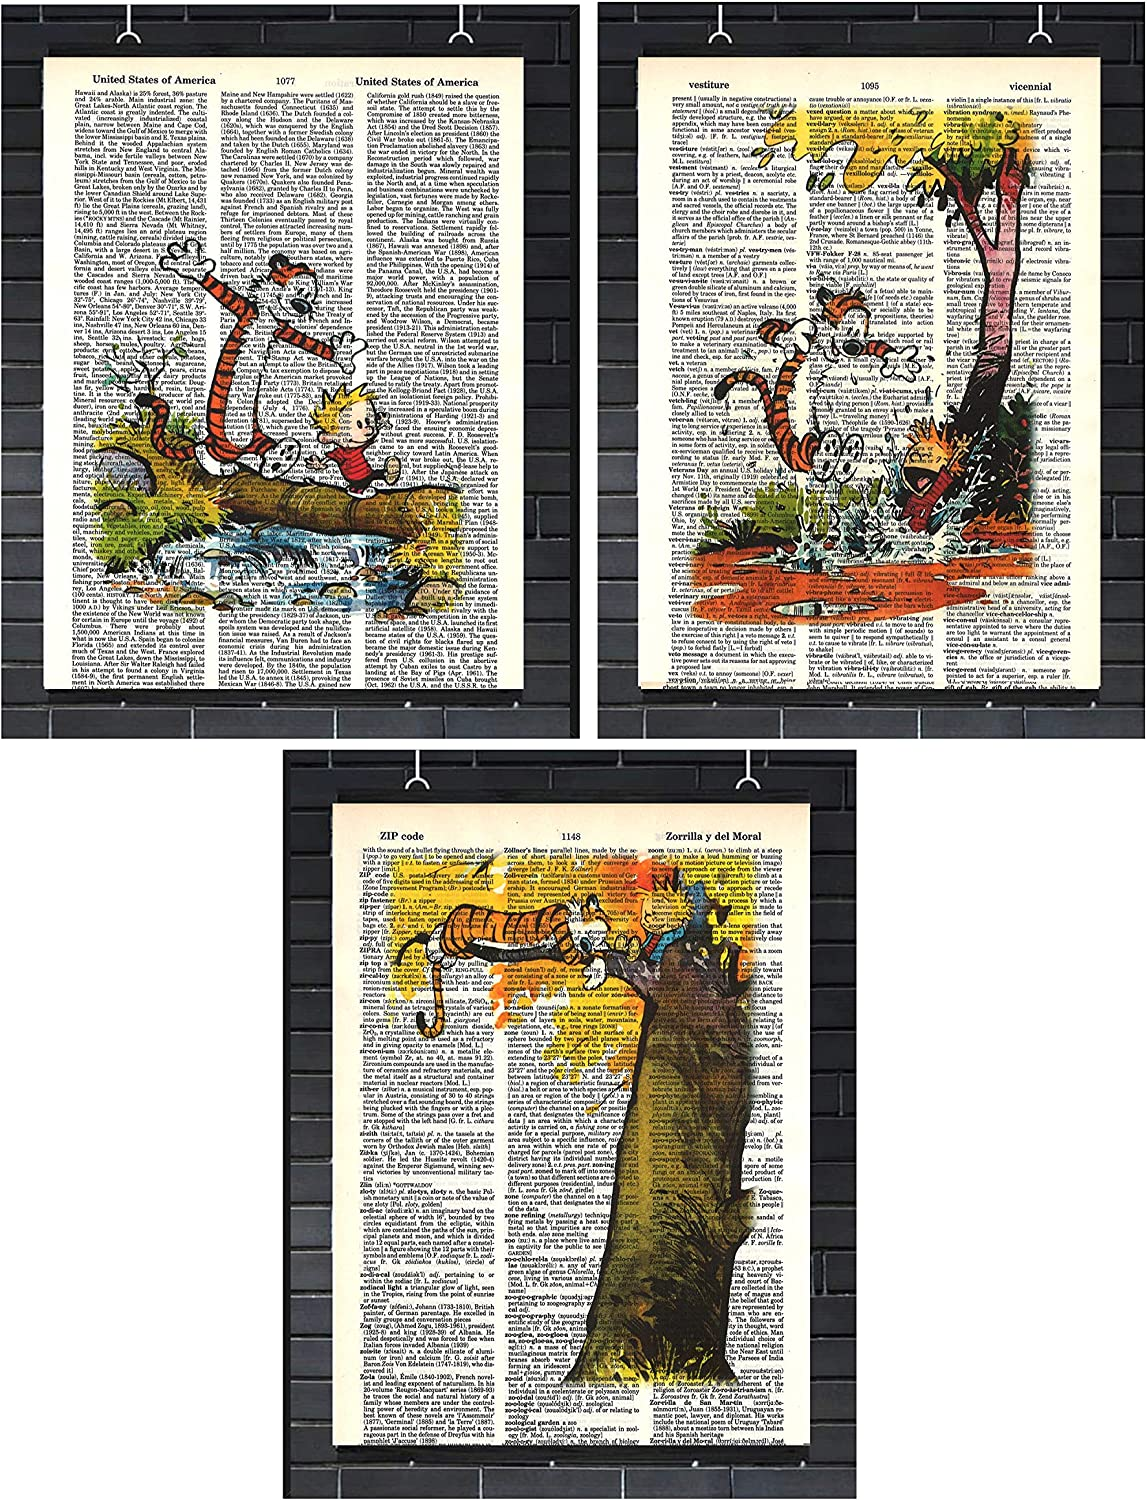 Calvin and Hobbes Classic Cartoon Prints Set of (3) Crossing Bridge Poster Jumping in Puddle Poster Sleeping in Tree Poster Calvin and Hobbes Children's Bedroom Wall Decor Dictionary Art Print